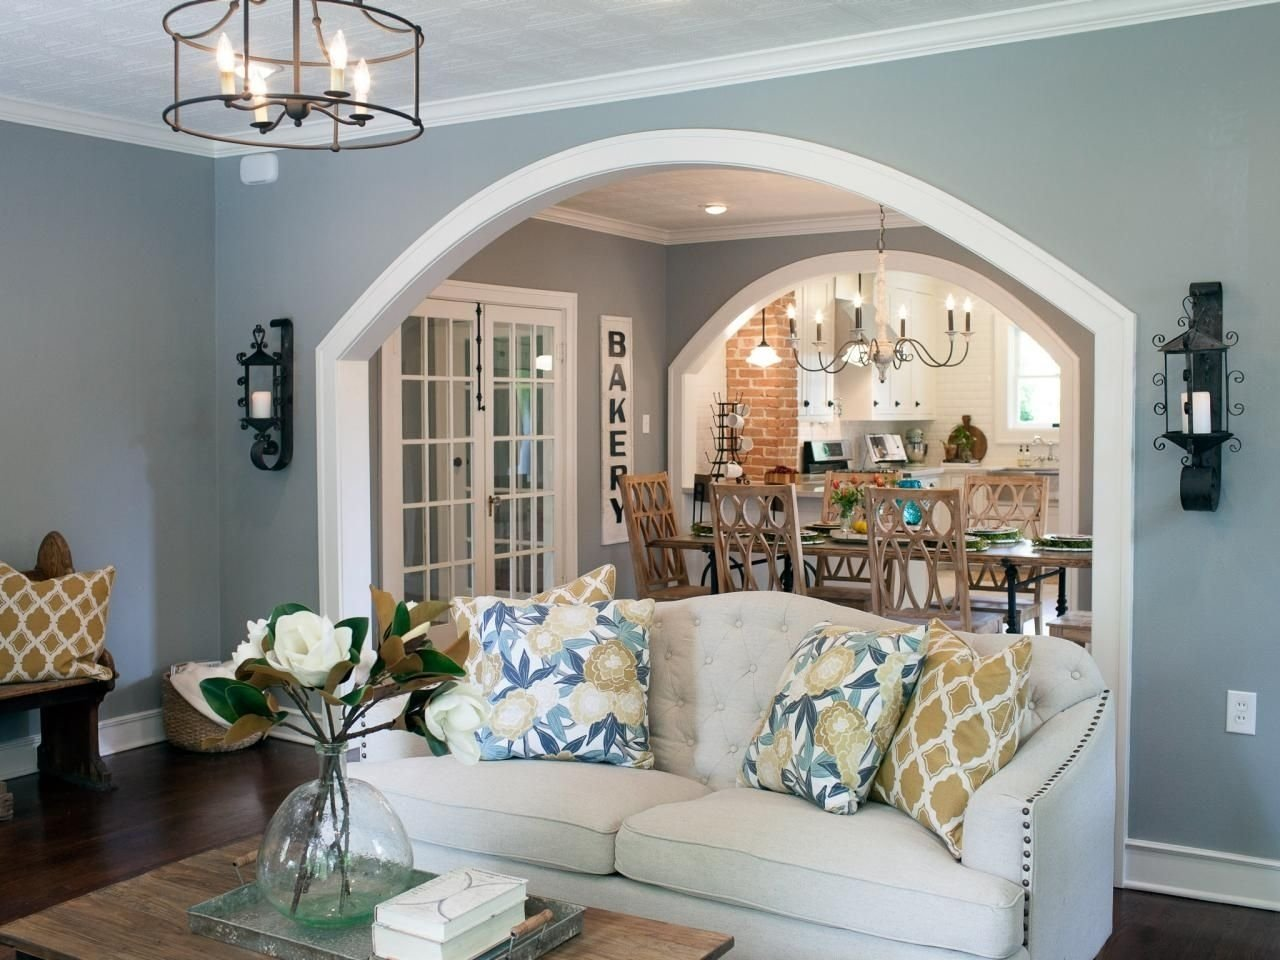 10 Awesome Family Room Paint Color Ideas best living room paint colors ideas design of neutral living room 2020